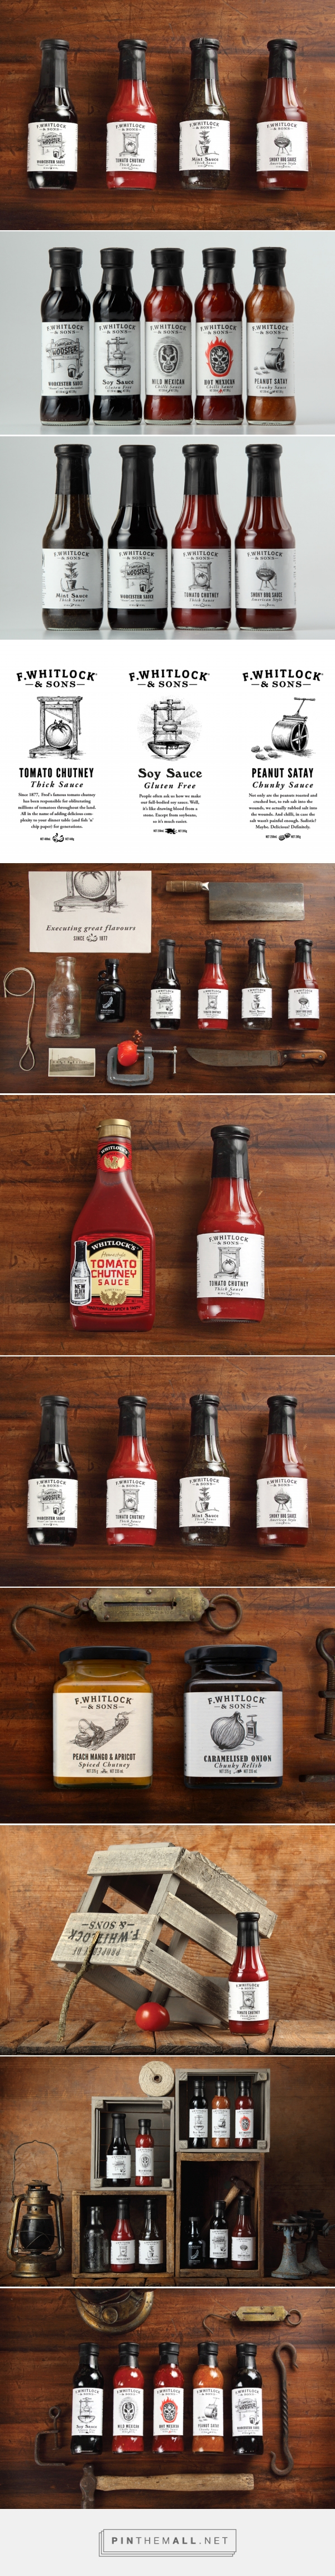 New Packaging for F. Whitlock & Sons by Marx Design - BP&O - created via http://pinthemall.net